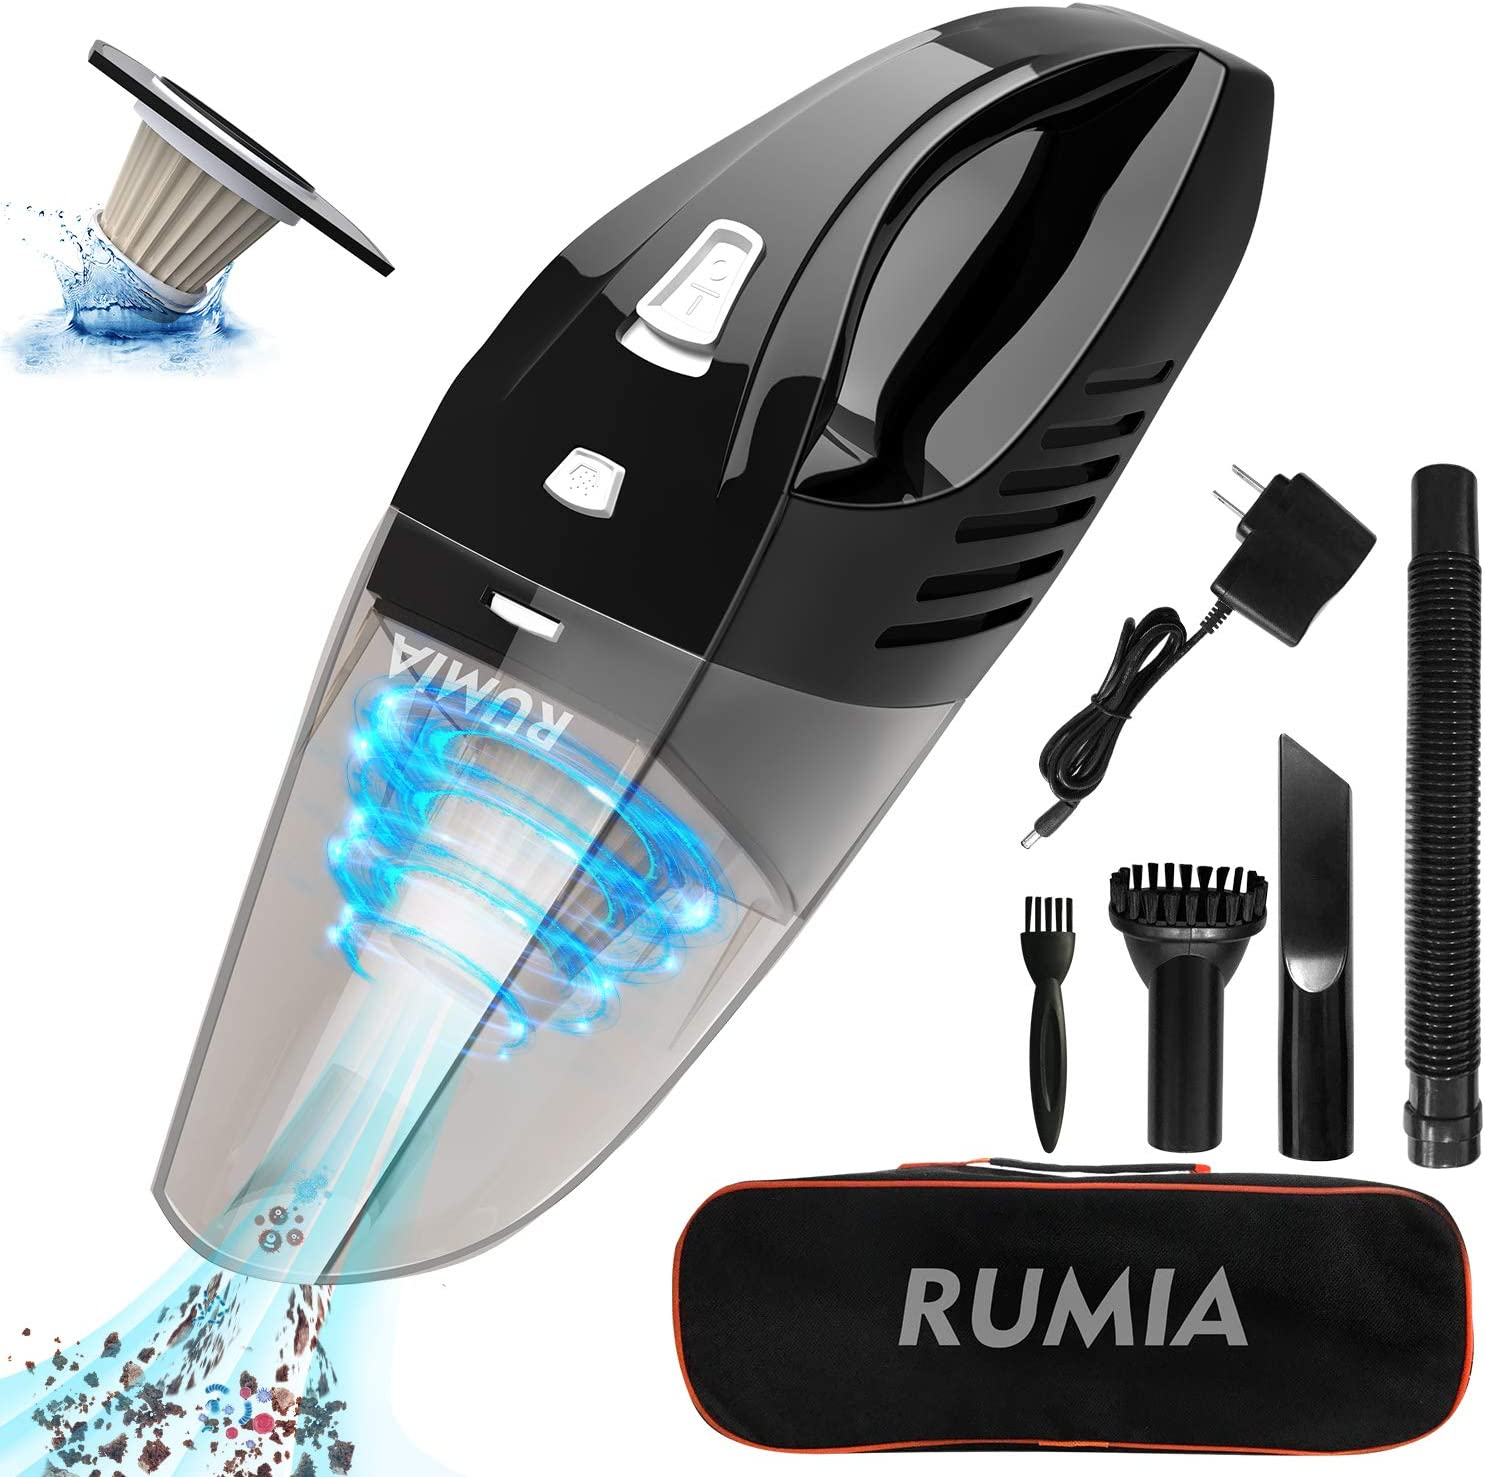 RUMIA Hand Vacuum Cordless with 7000PA Powerful Suction Handheld Vacuum Cleaner for Home/Car Cleaning,Wet Dry Vac